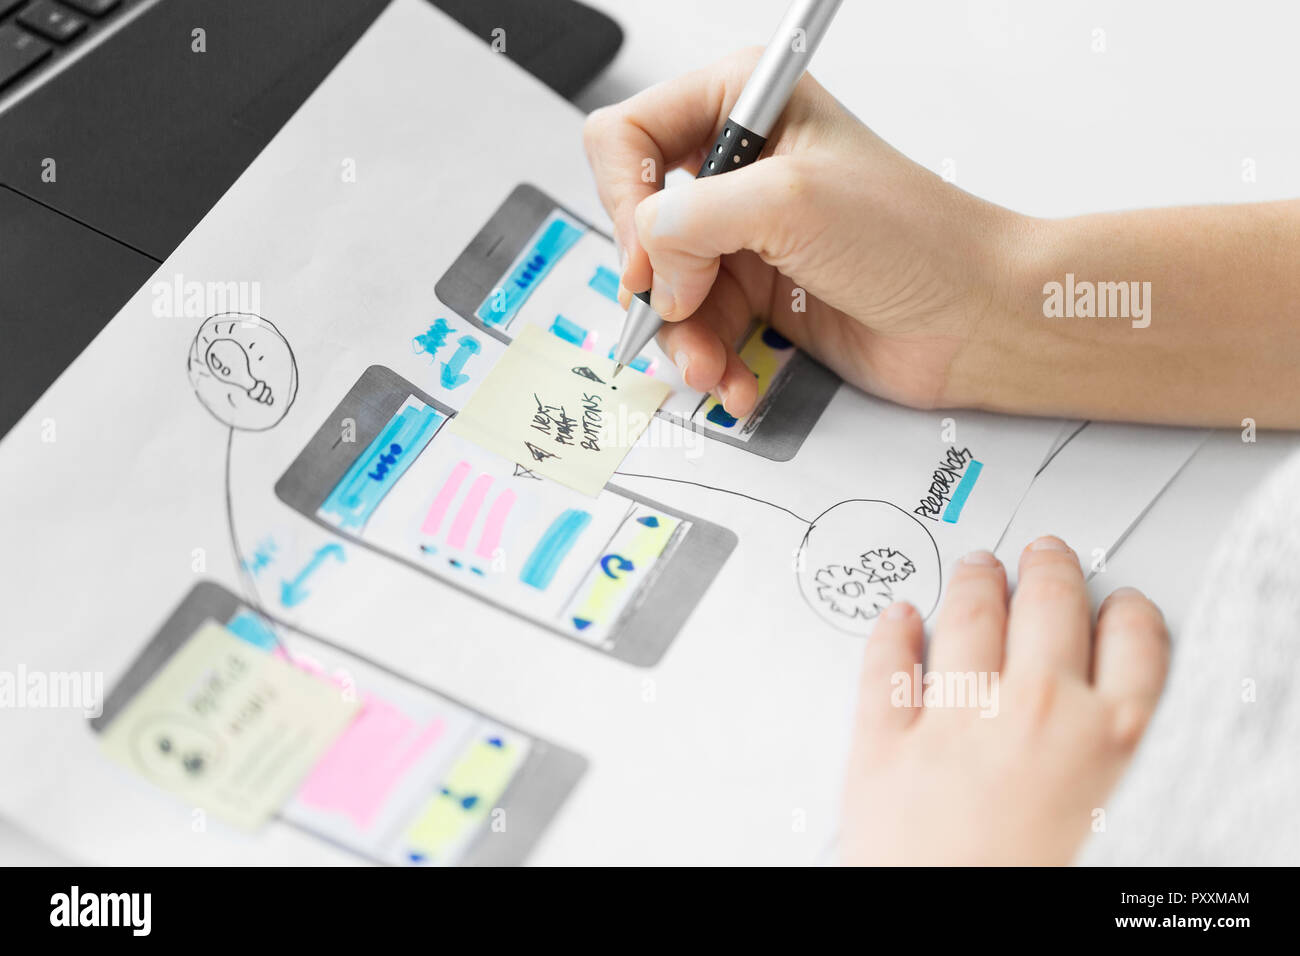 web designer working on user interface wireframe Stock Photo